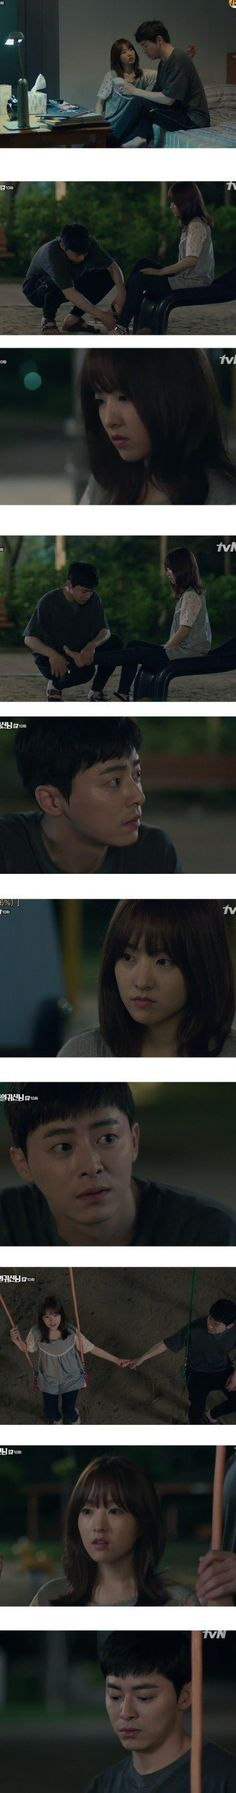 [Spoiler] Added episodes 9 and 10 captures for the Korean drama 'Oh My Ghostess' @ HanCinema :: The Korean Movie and Drama Database